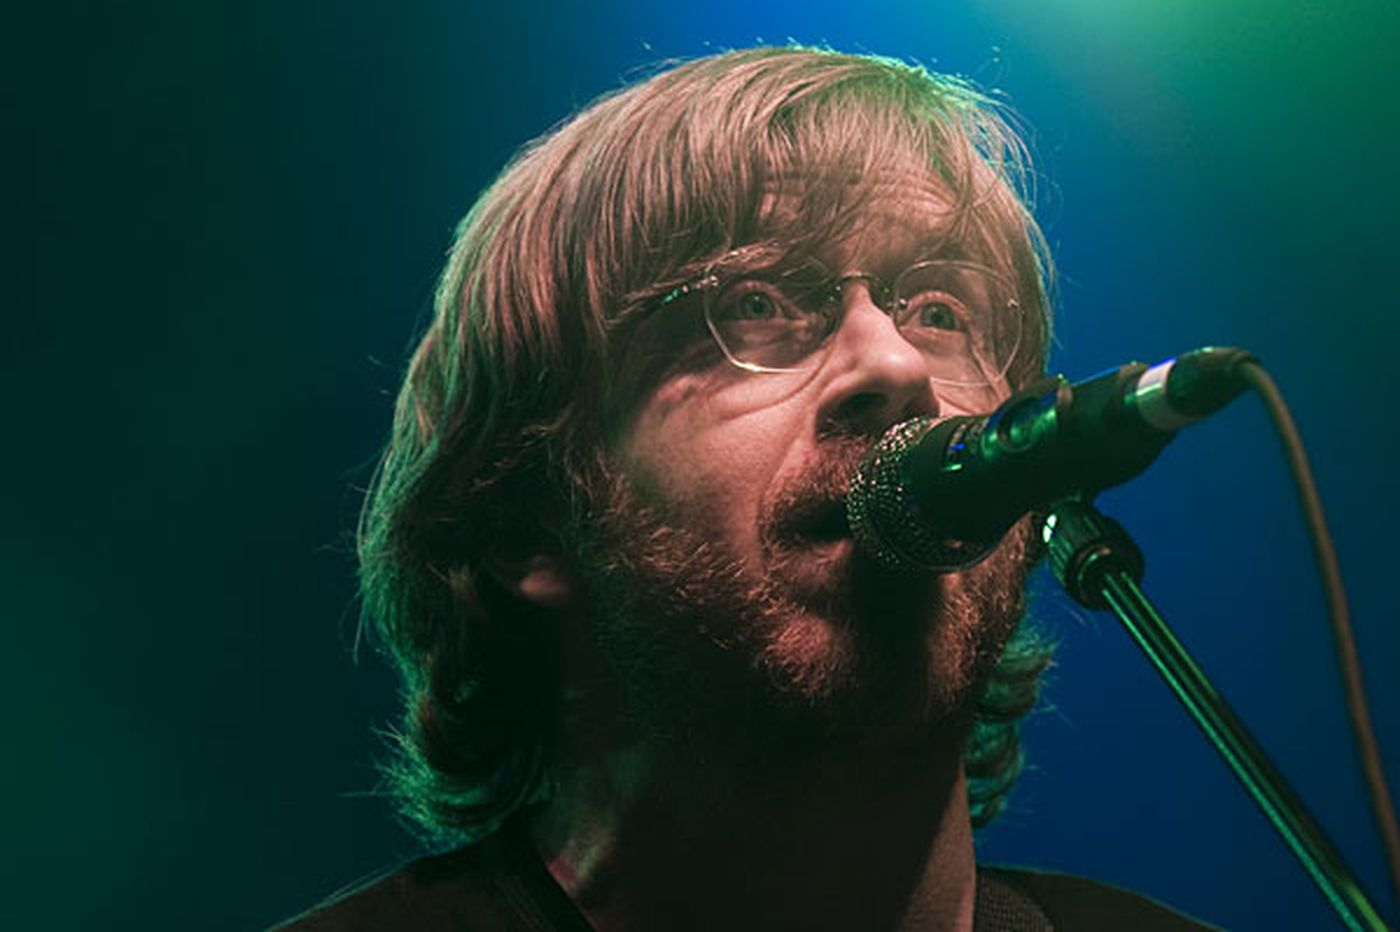 Phish's Trey Anastasio will play a concert with the Philadelphia Orchestra